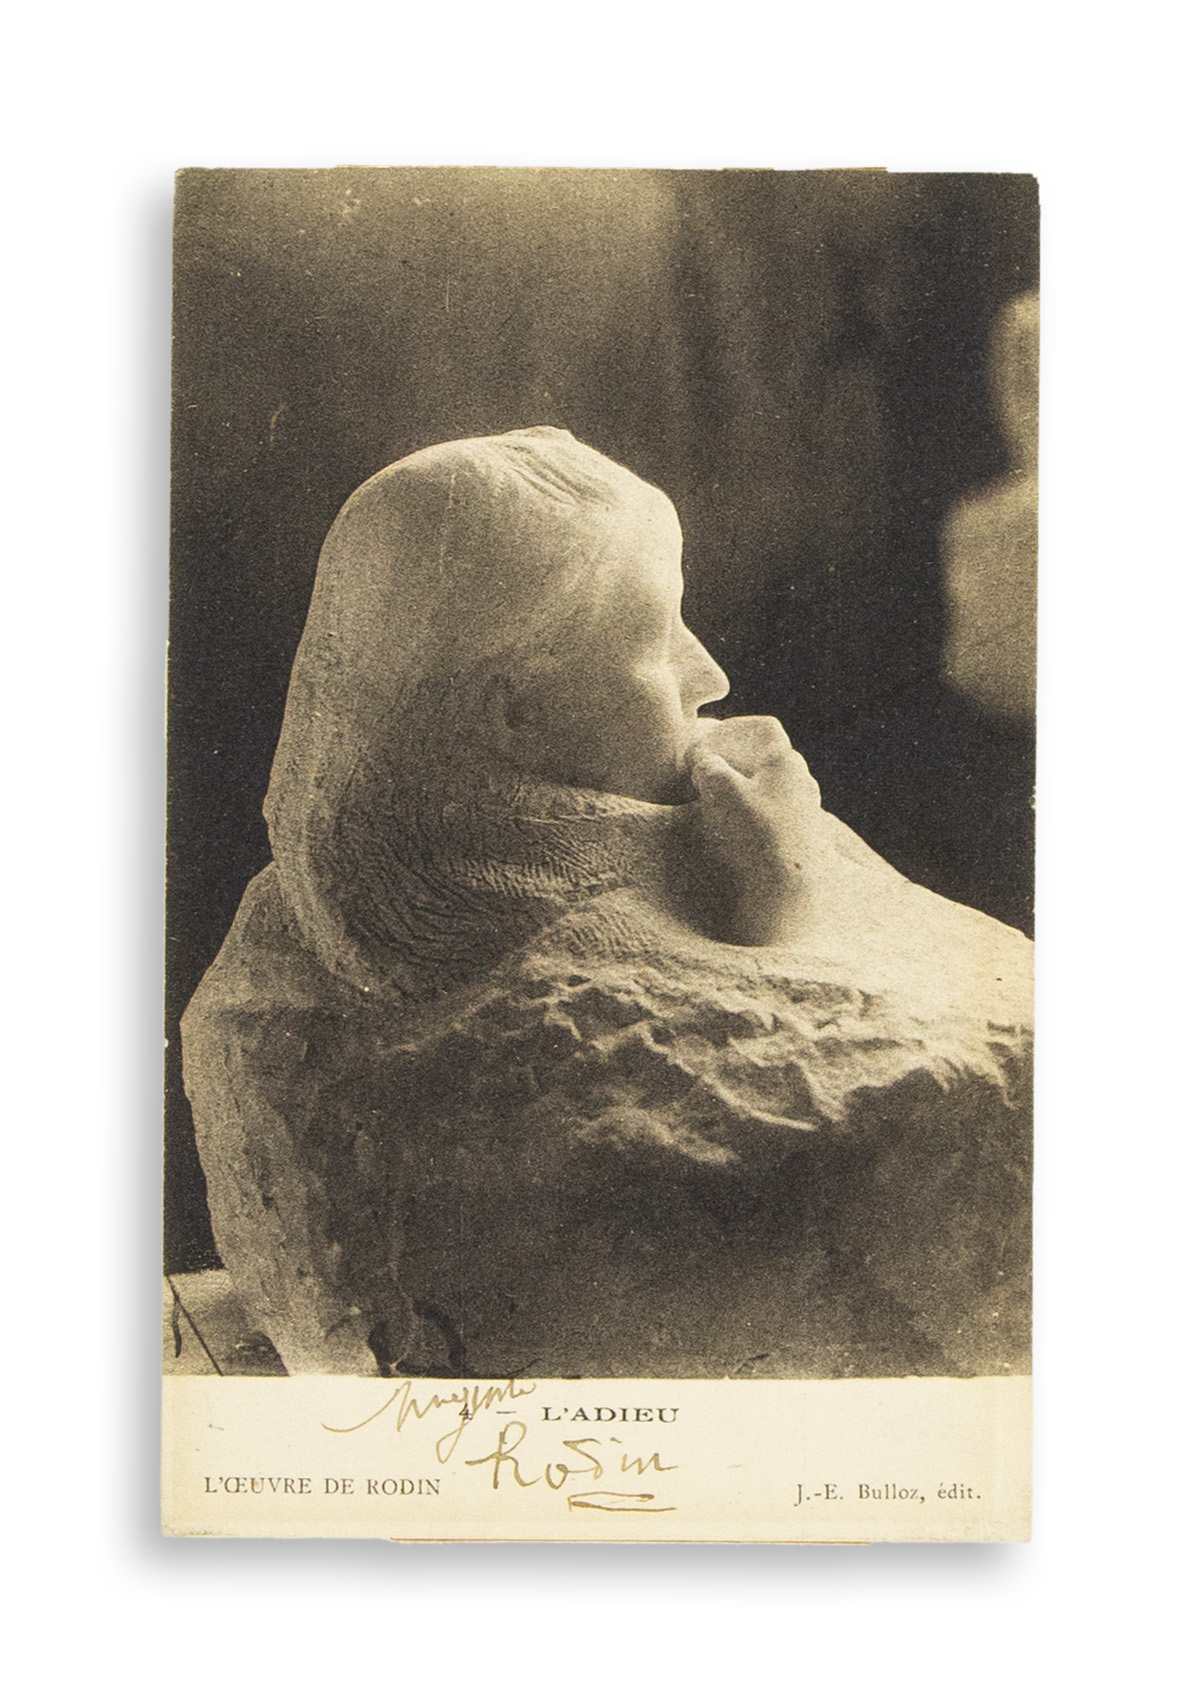 RODIN, AUGUSTE. Photograph postcard Signed, in full, showing his sculpture, Farewell.